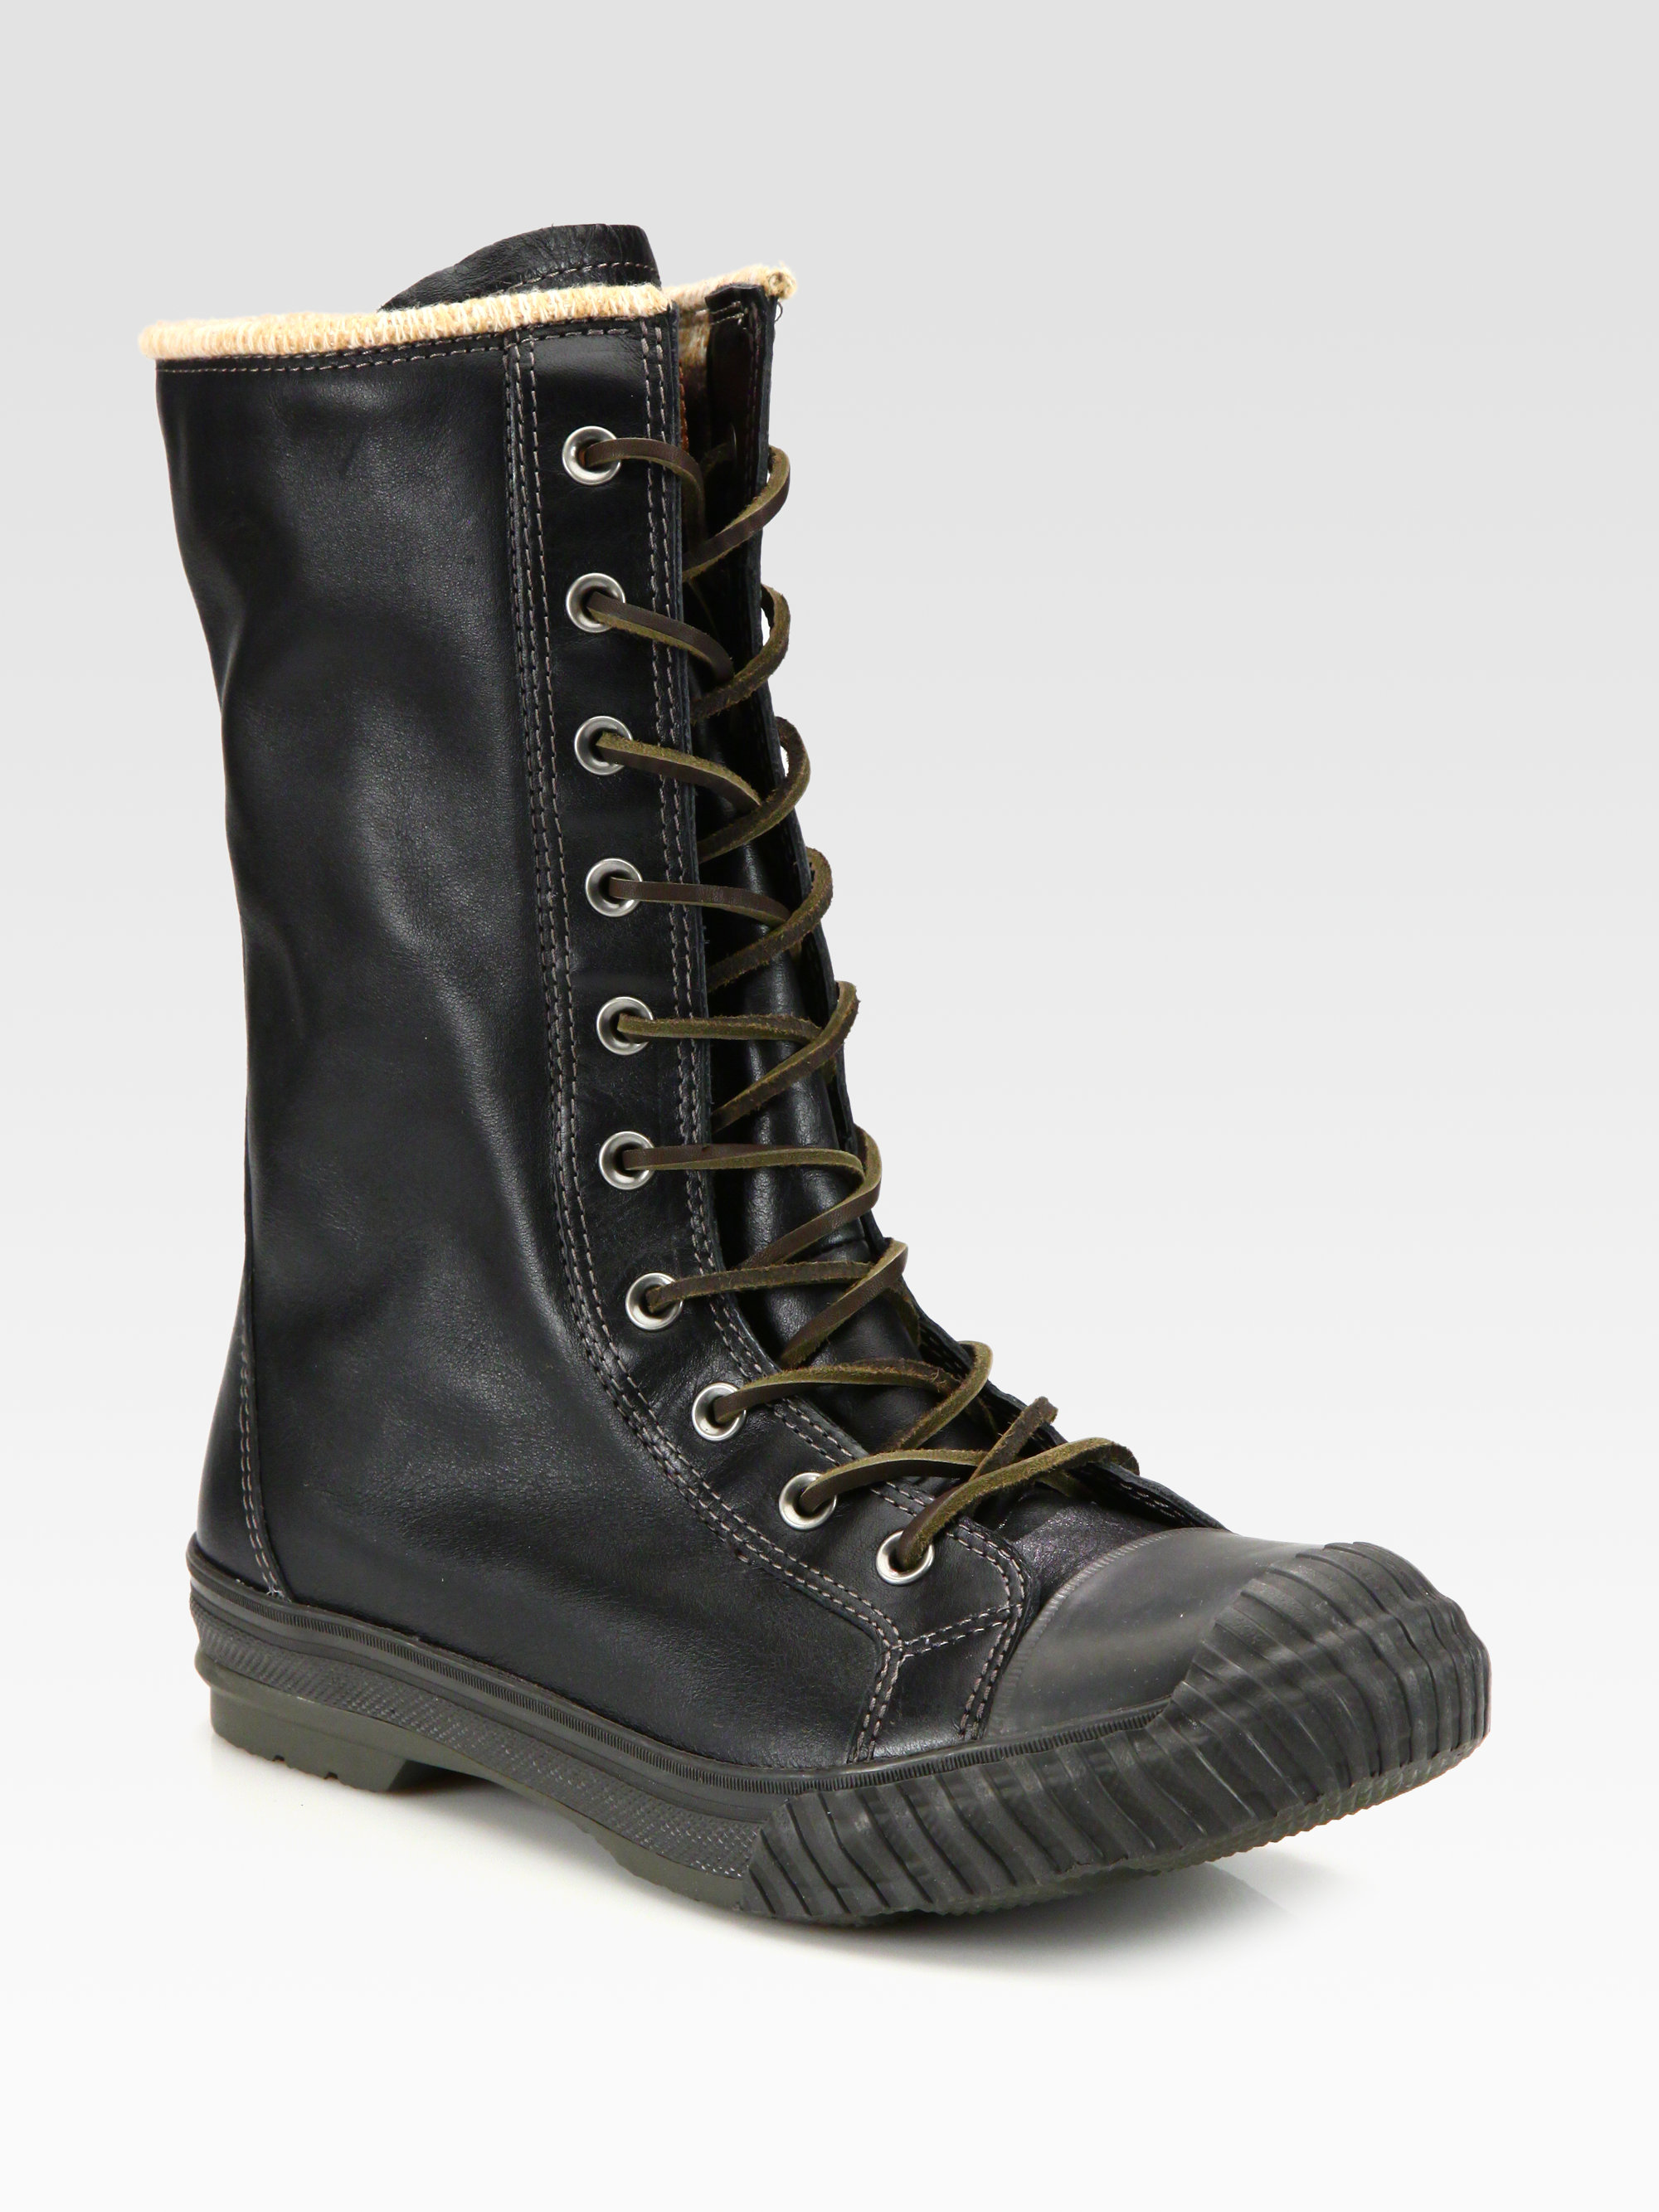 33c91d4b0ffe Lyst - Converse Chuck Taylor All Star Bosey Tall Boots in Black for Men